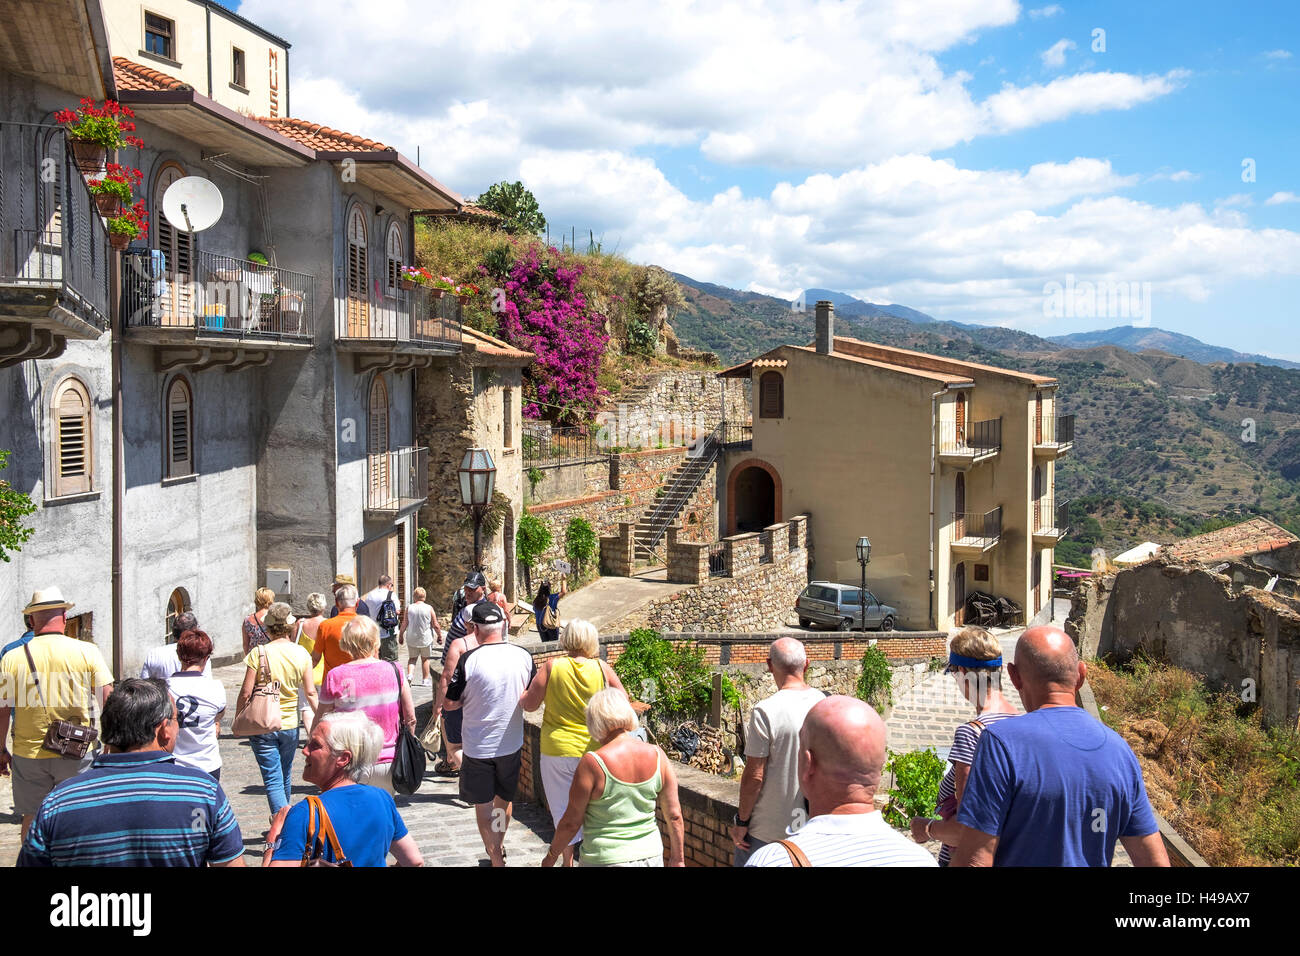 A tourist group on a visit to the mountain village of Savoca on the island of Sicily, Italy. - Stock Image